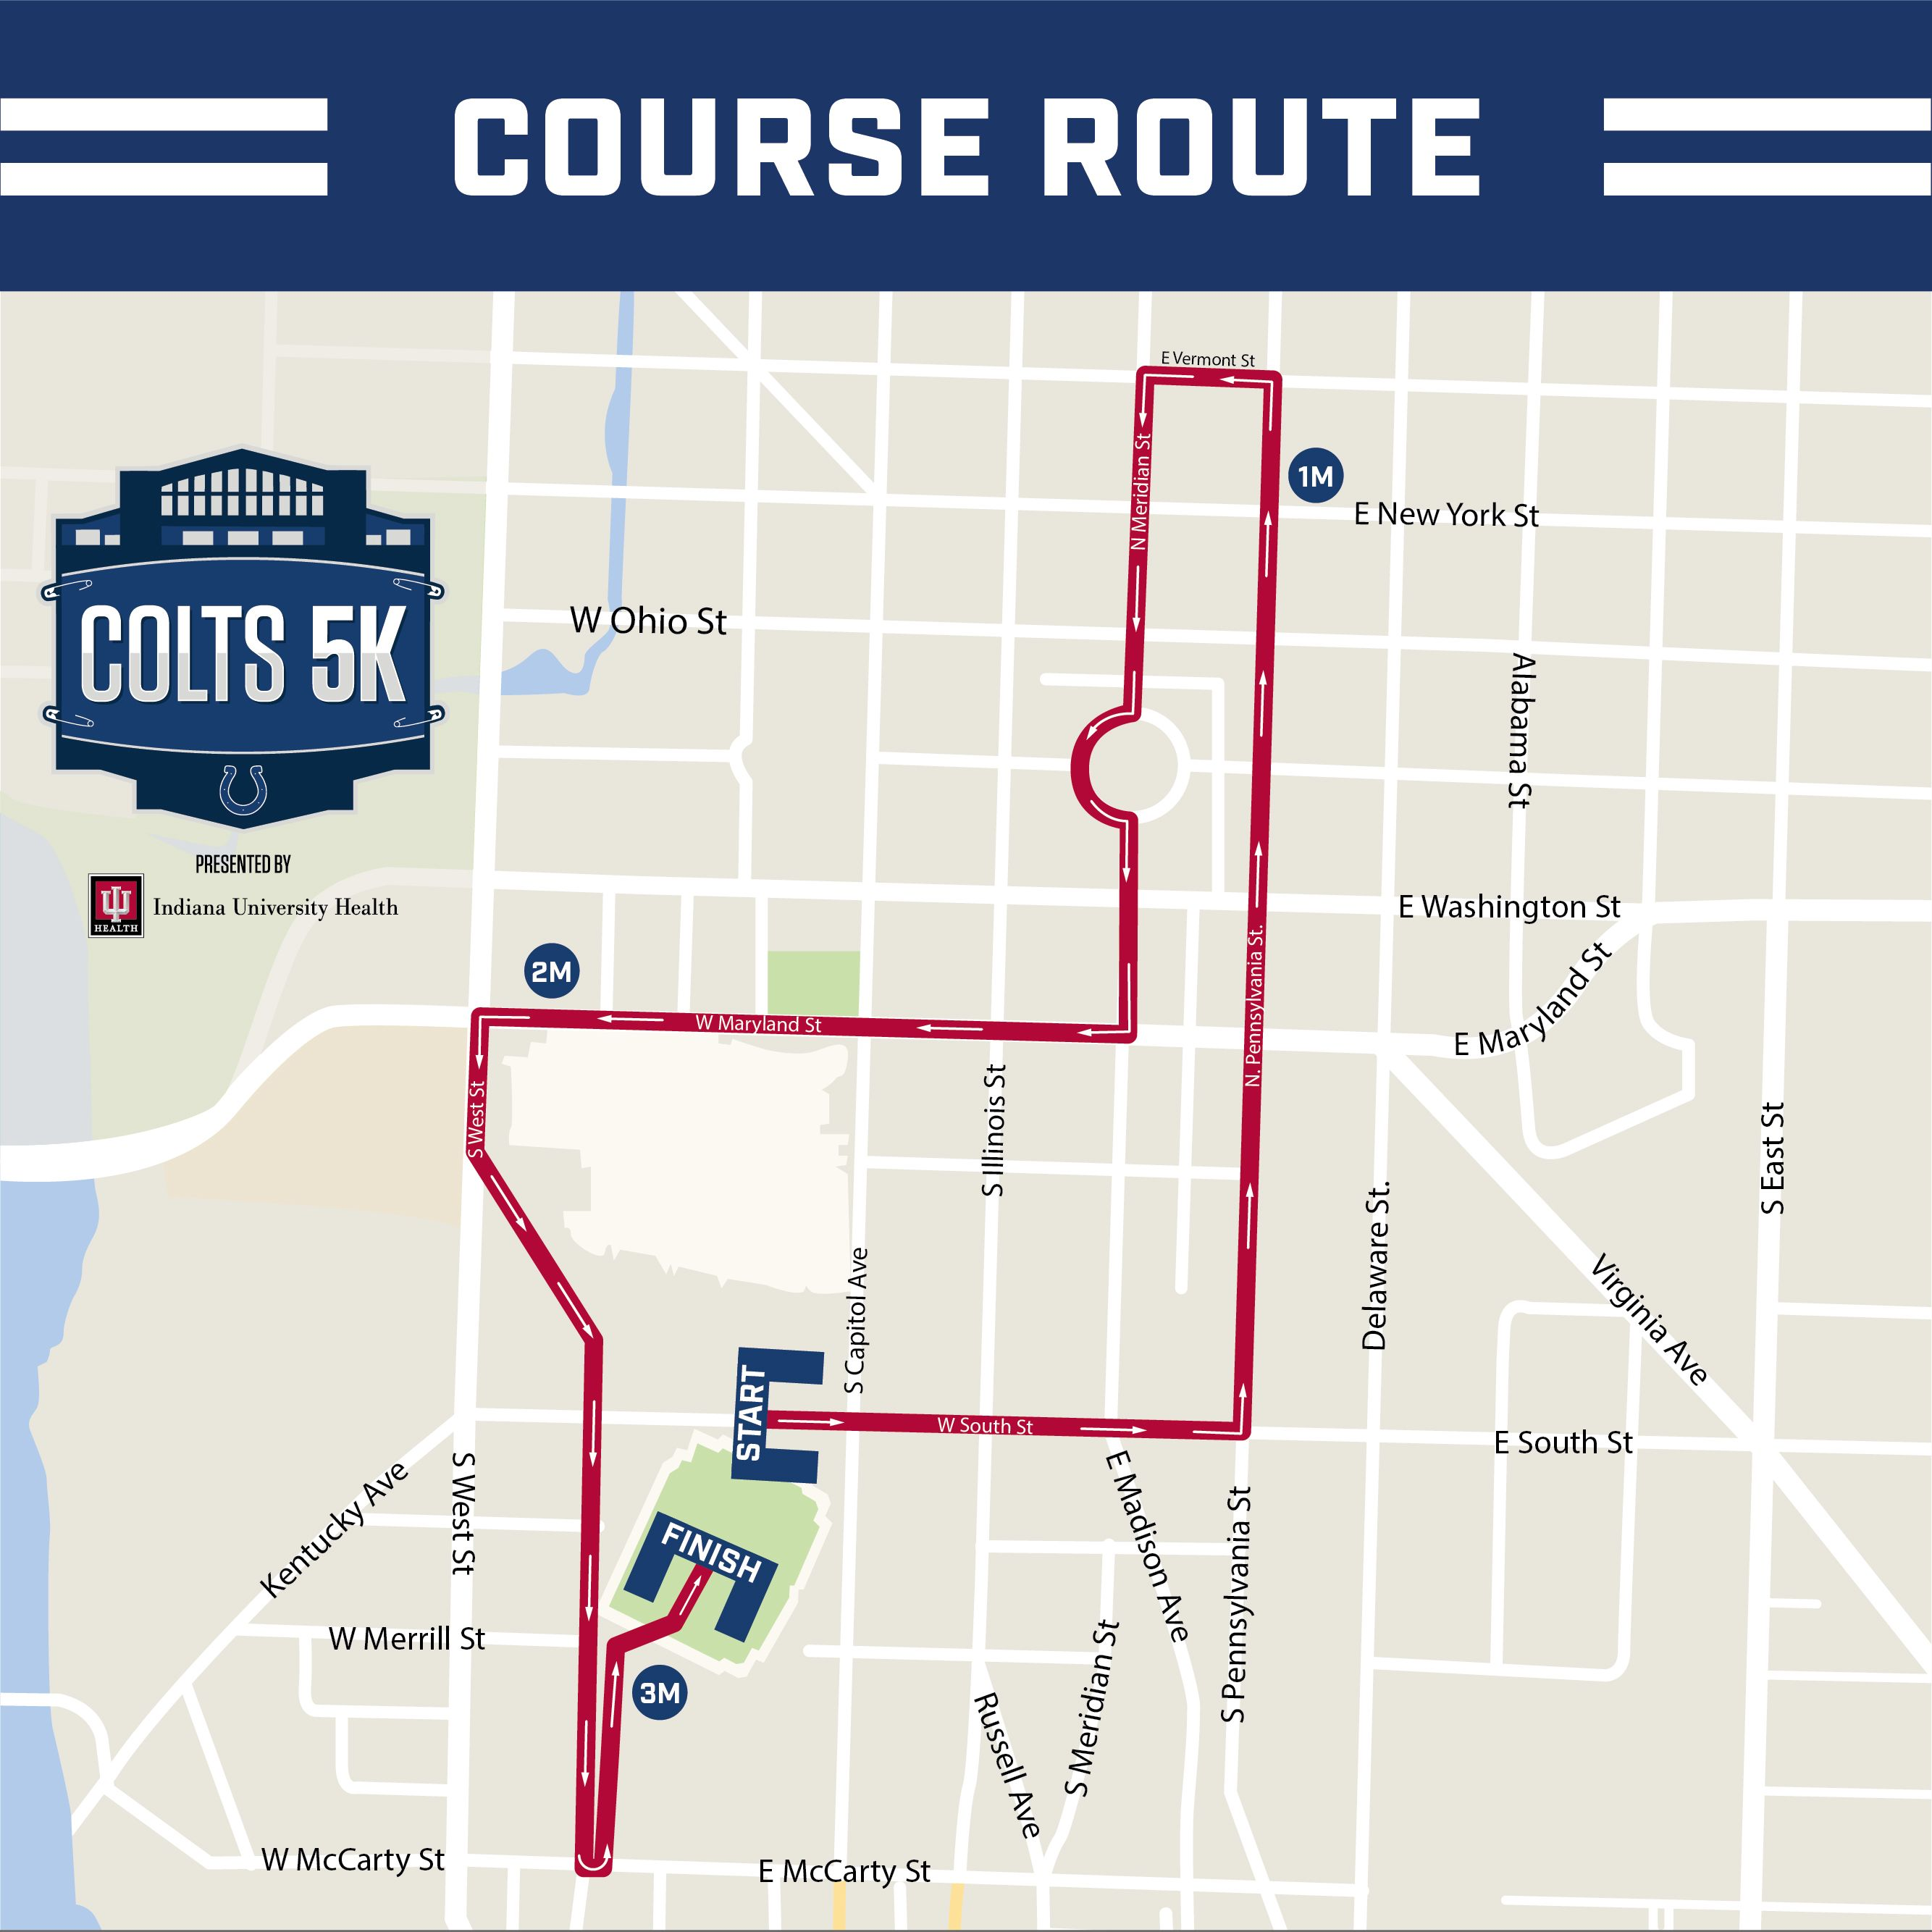 2020_Colts 5K_Map_Course_NoDate (2)